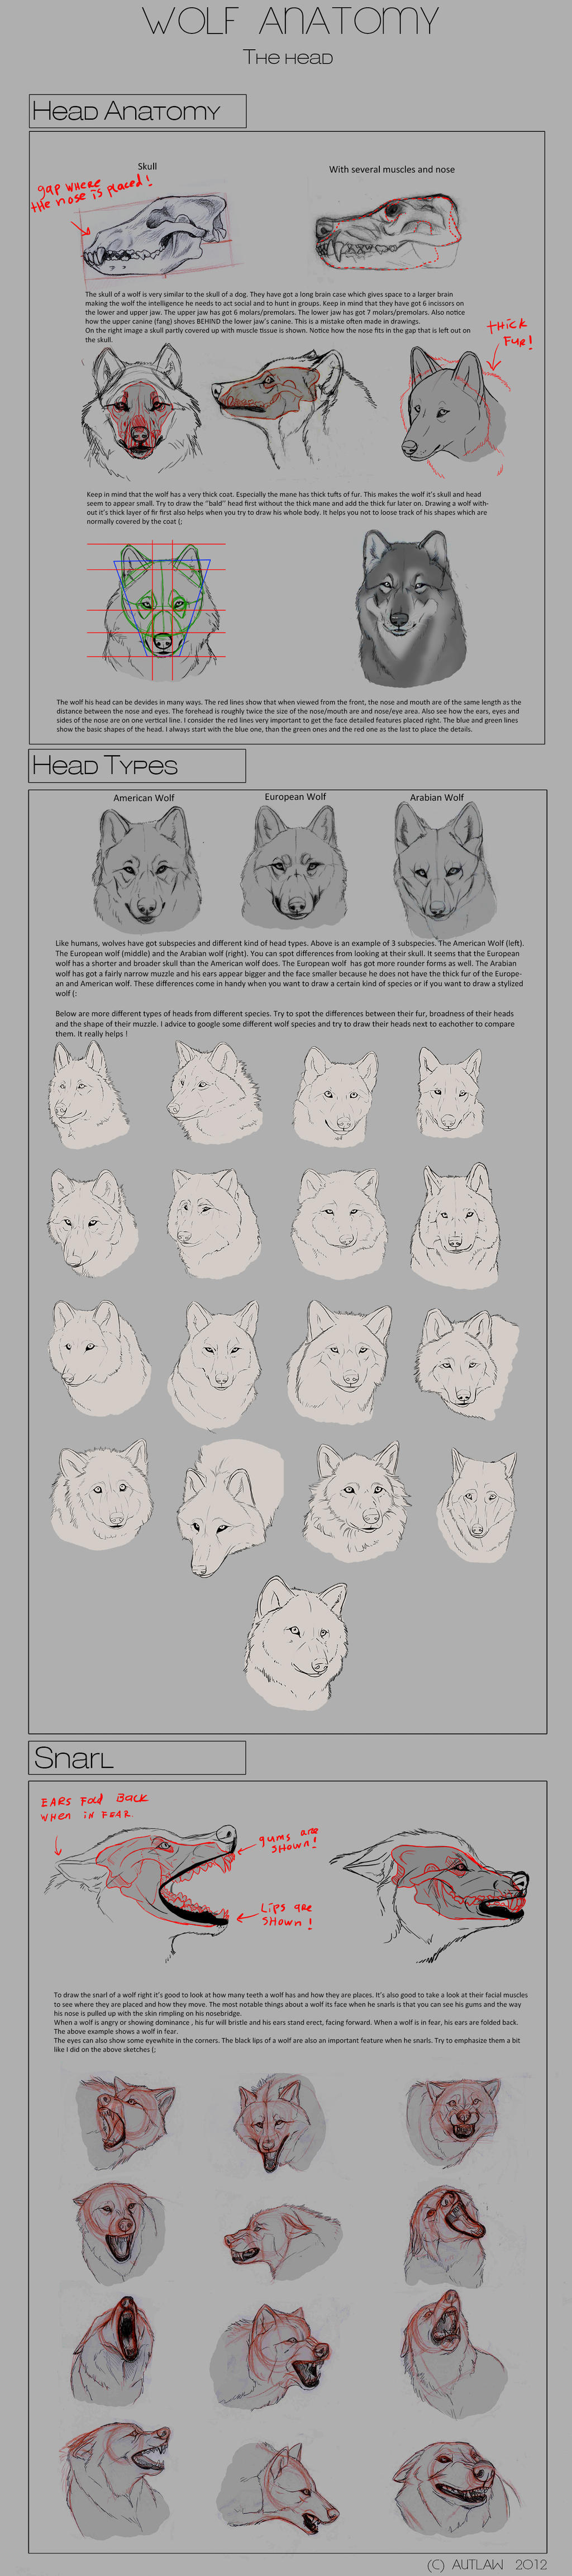 Wolf Anatomy - Part 3 by Autlaw